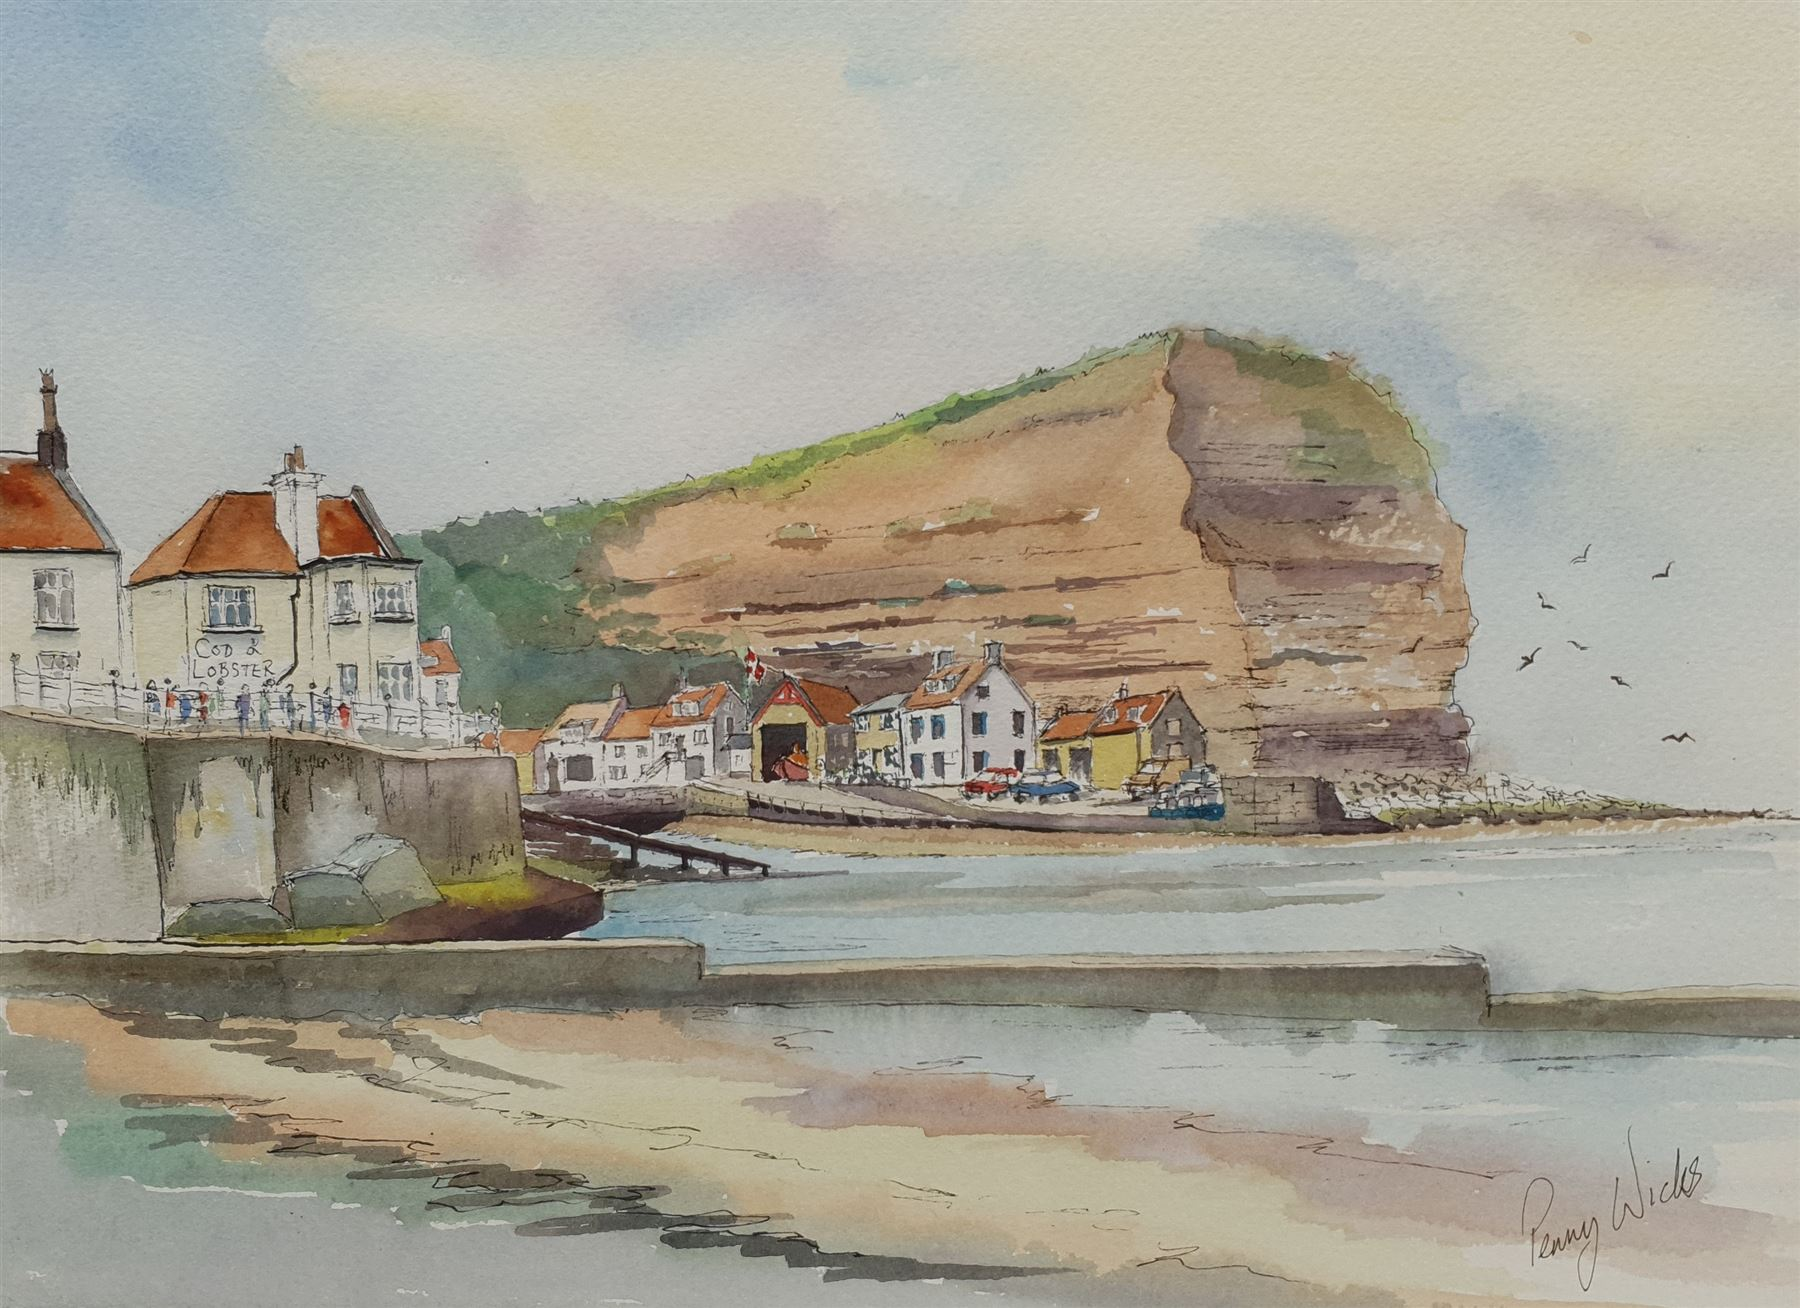 Penny Wicks (British 1949-): Cod and Lobster 'Staithes'